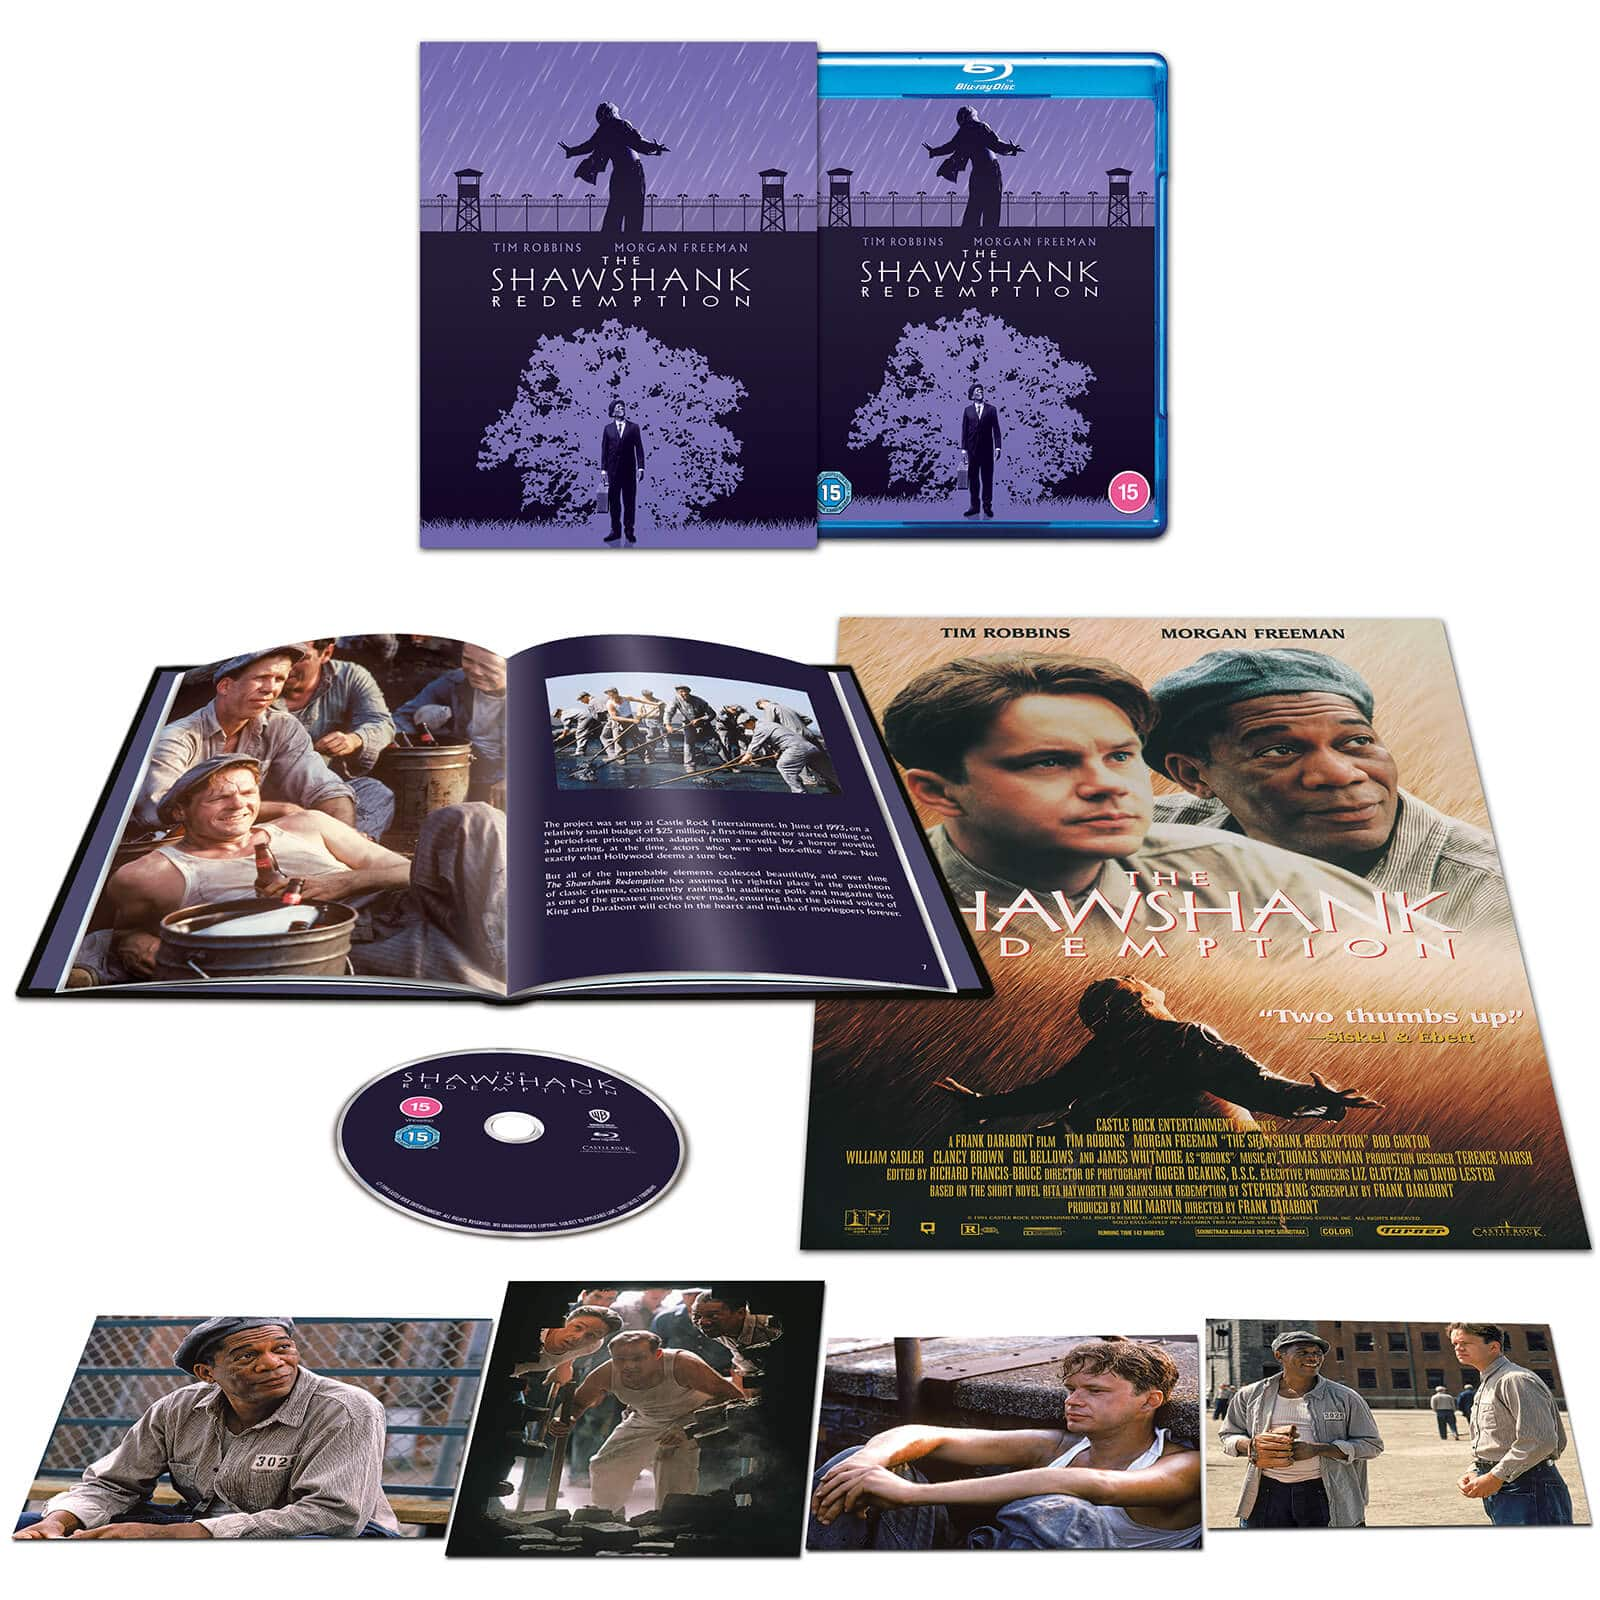 Theshawshankredemption Lesevades .bluray Steelbook Uk Exclusive Zavvi